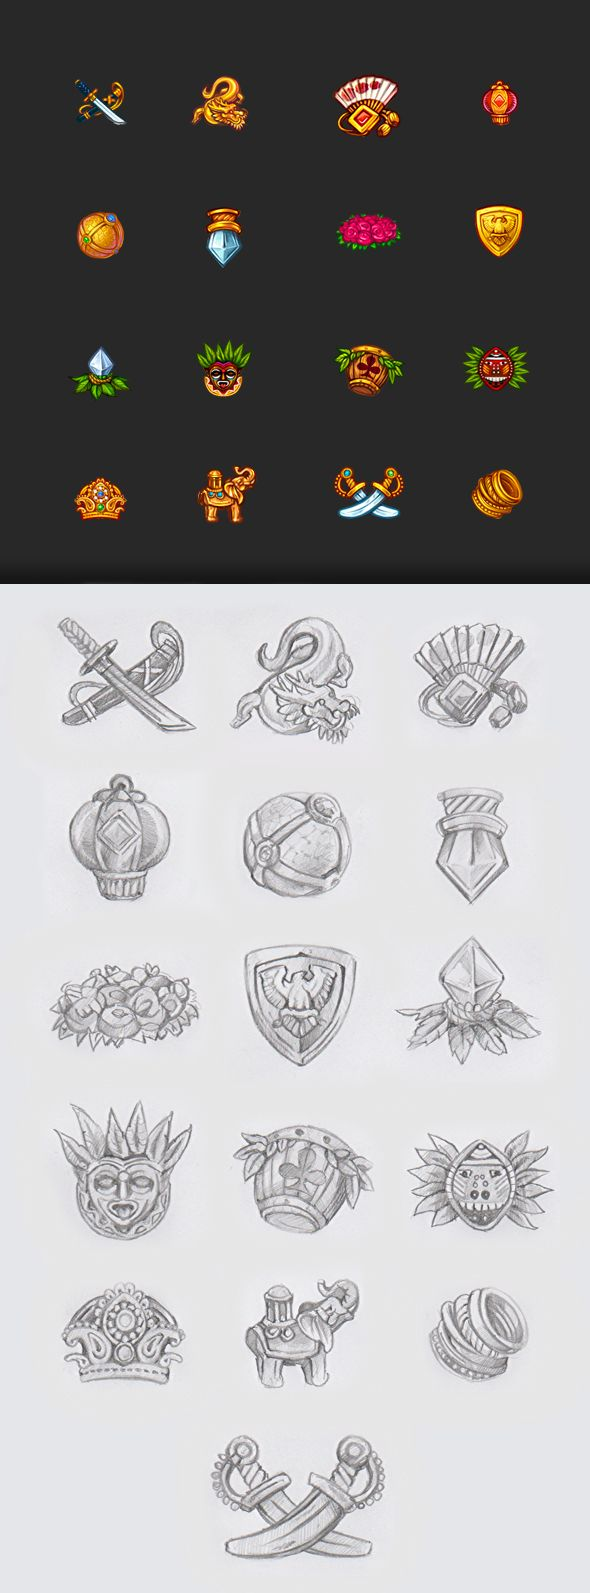 Icons for the game slot-machine by SLOTOPAINT game design, via Behance